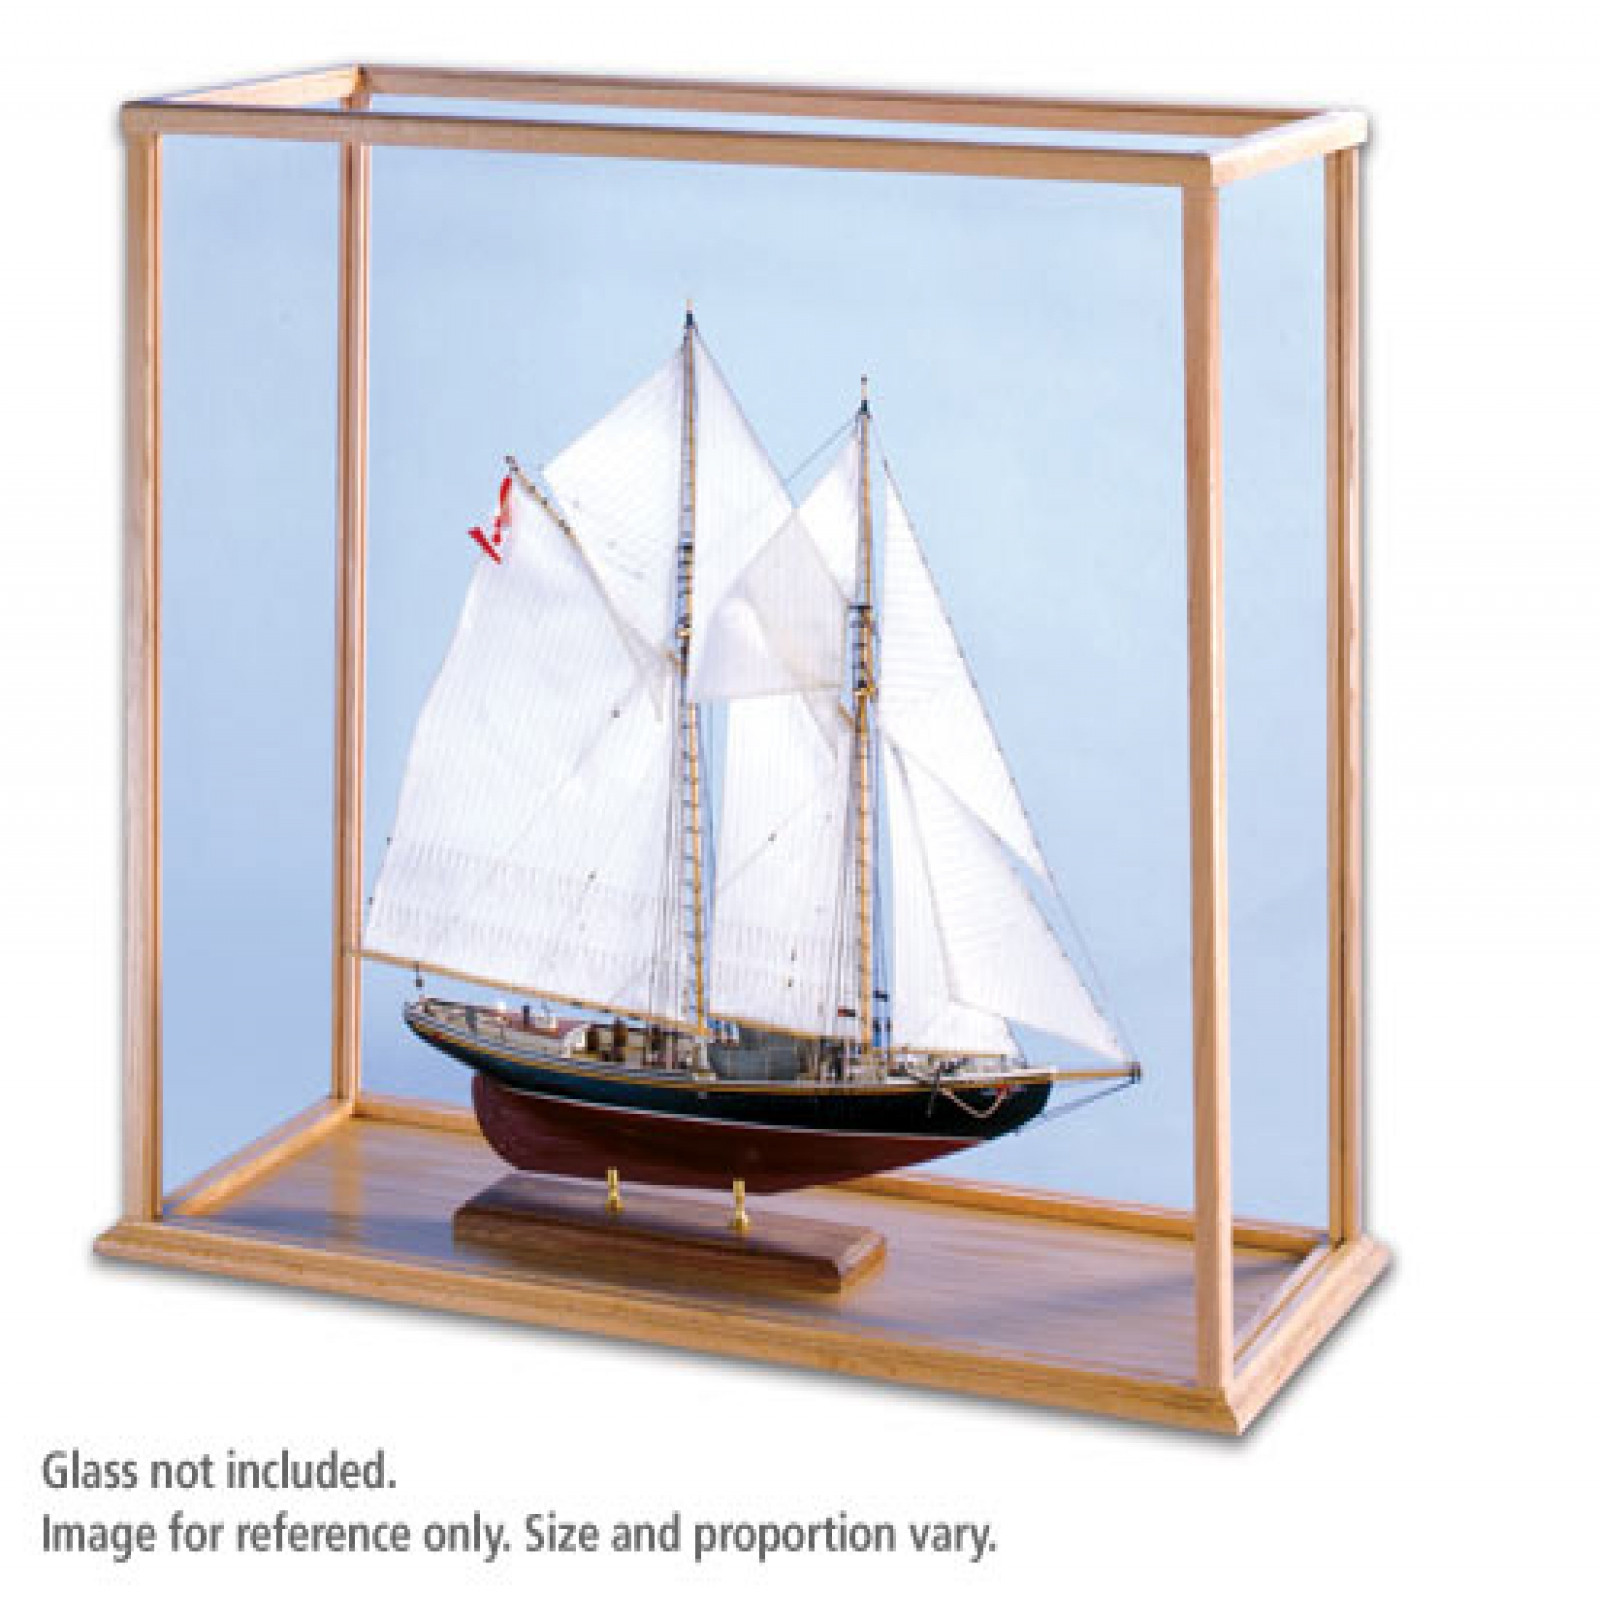 OAK SHIP MODEL CASE   L48 X W20 X H32  KIT